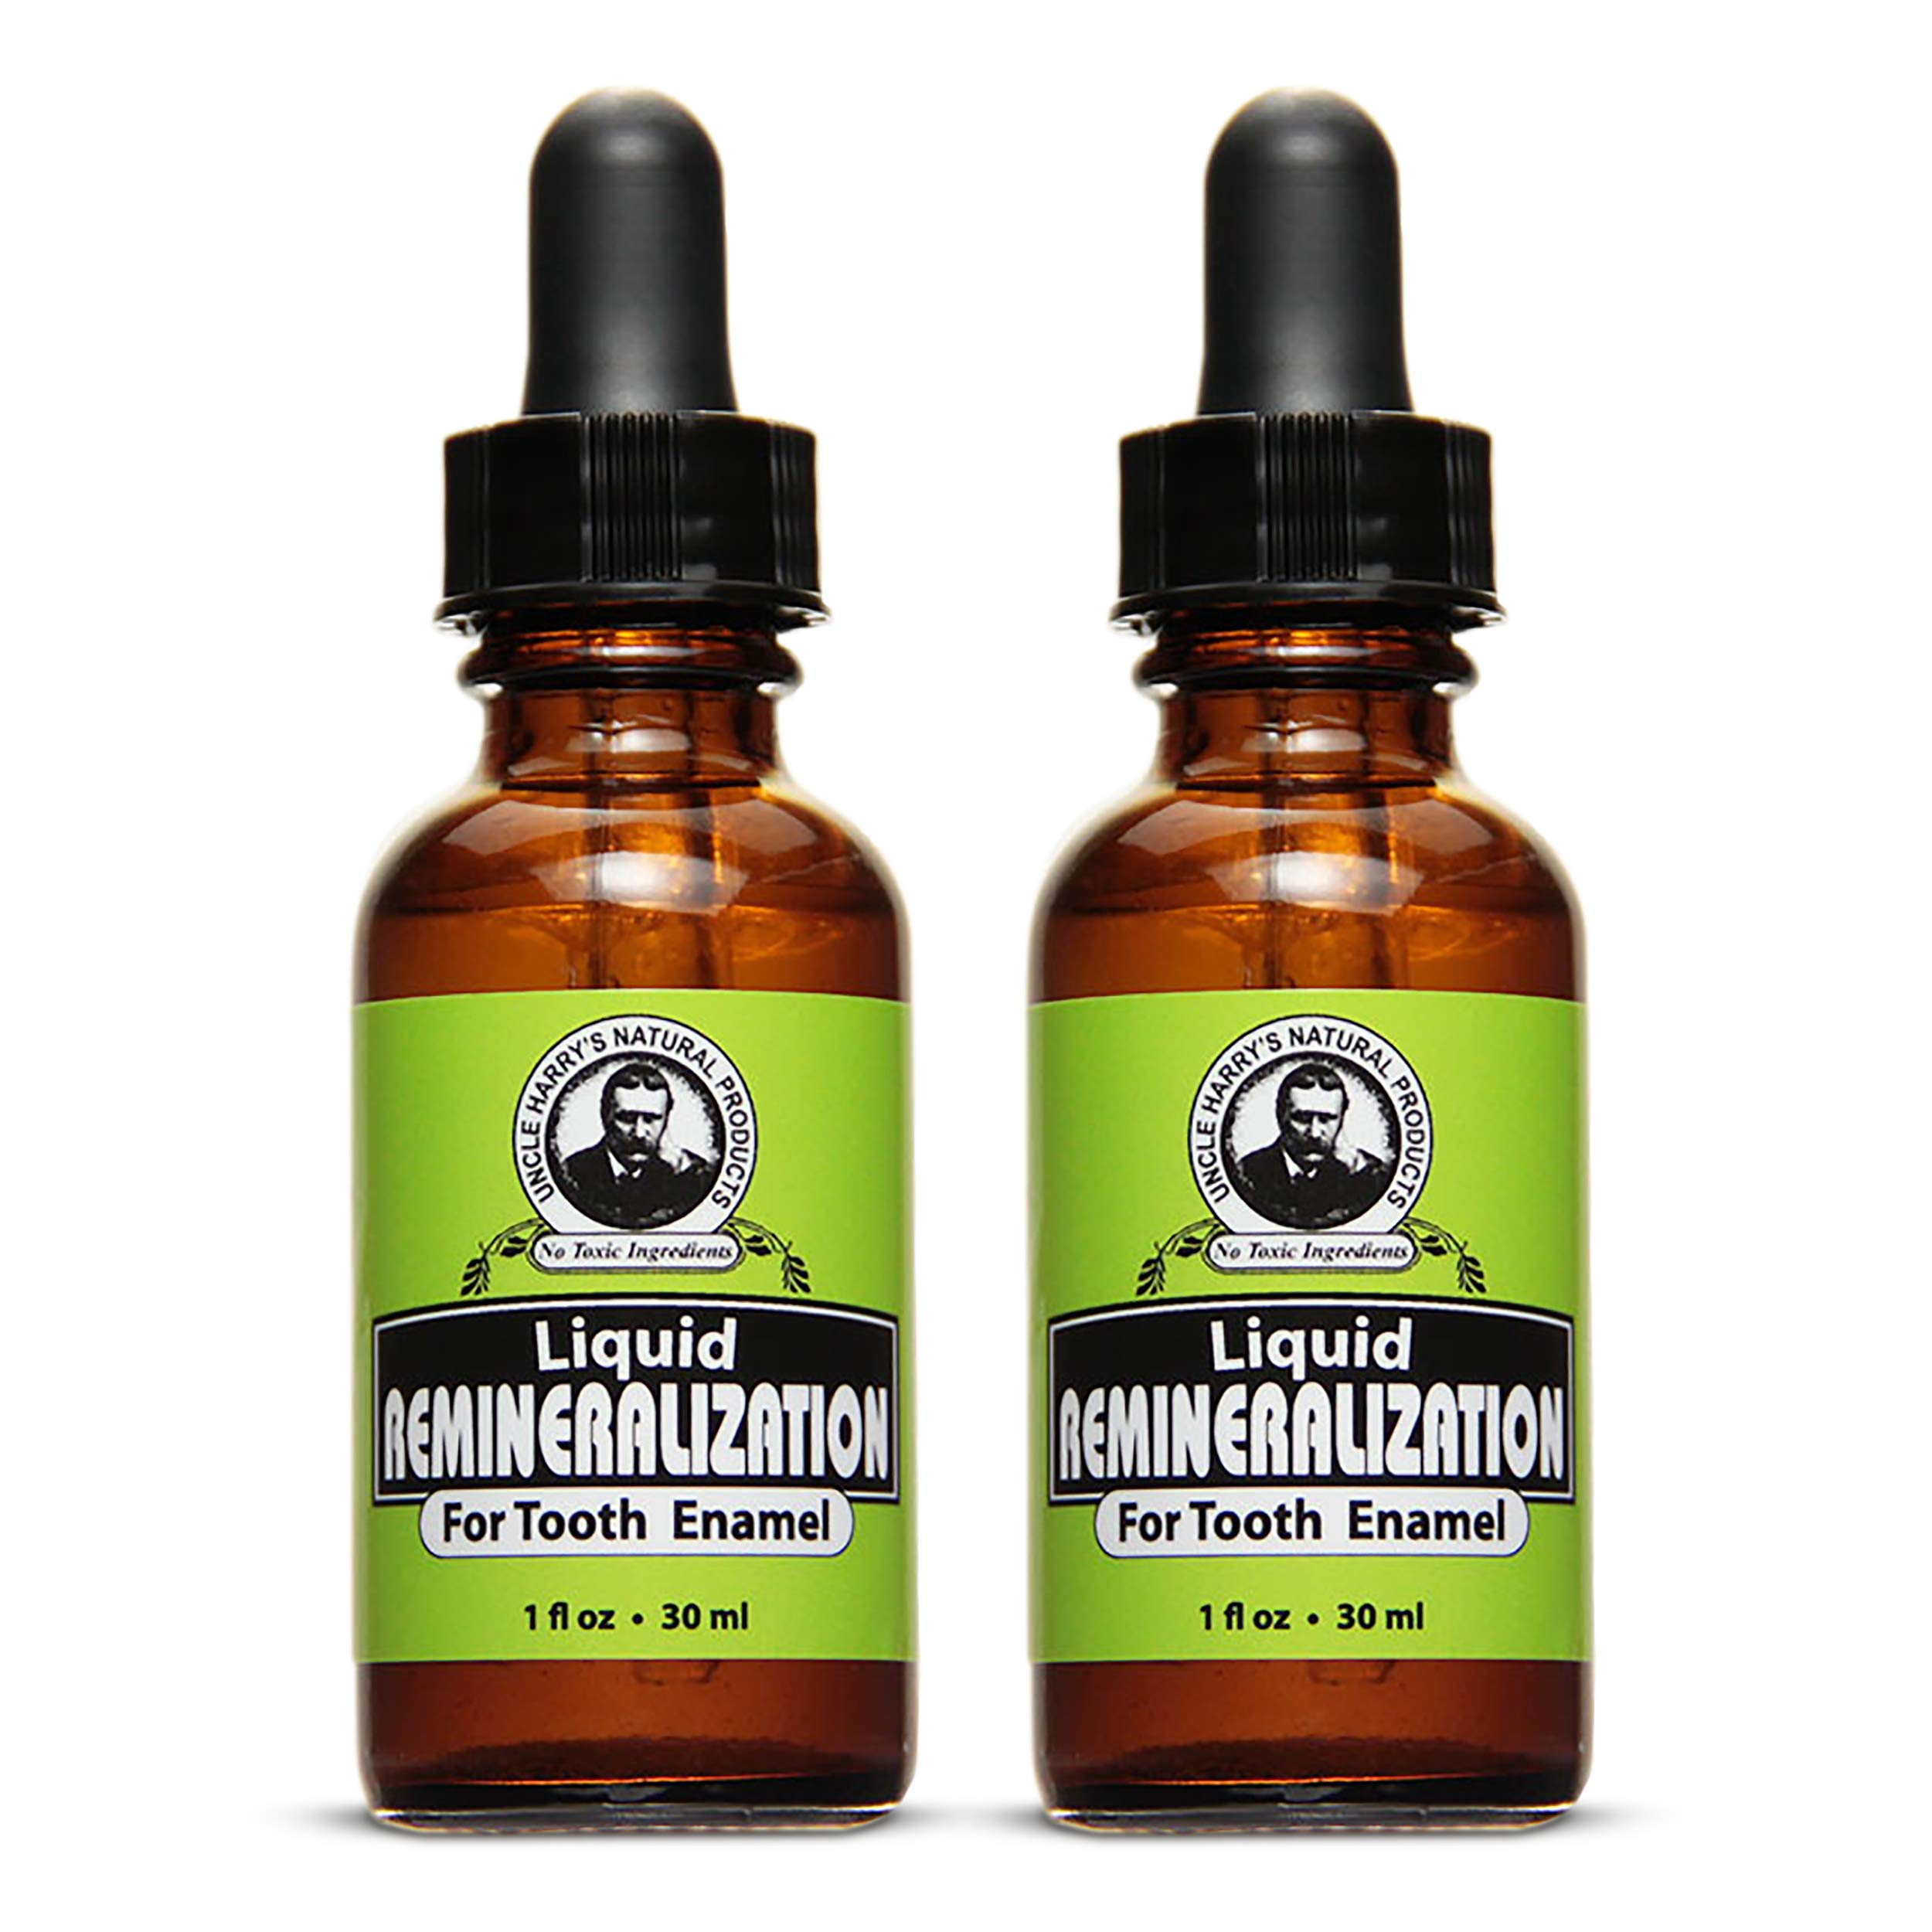 Uncle Harry's Natural & Fluoride-free Remineralization Liquid For Tooth Enamel - Freshens Breath & Strengthens Teeth (2 pack, 1 oz.)